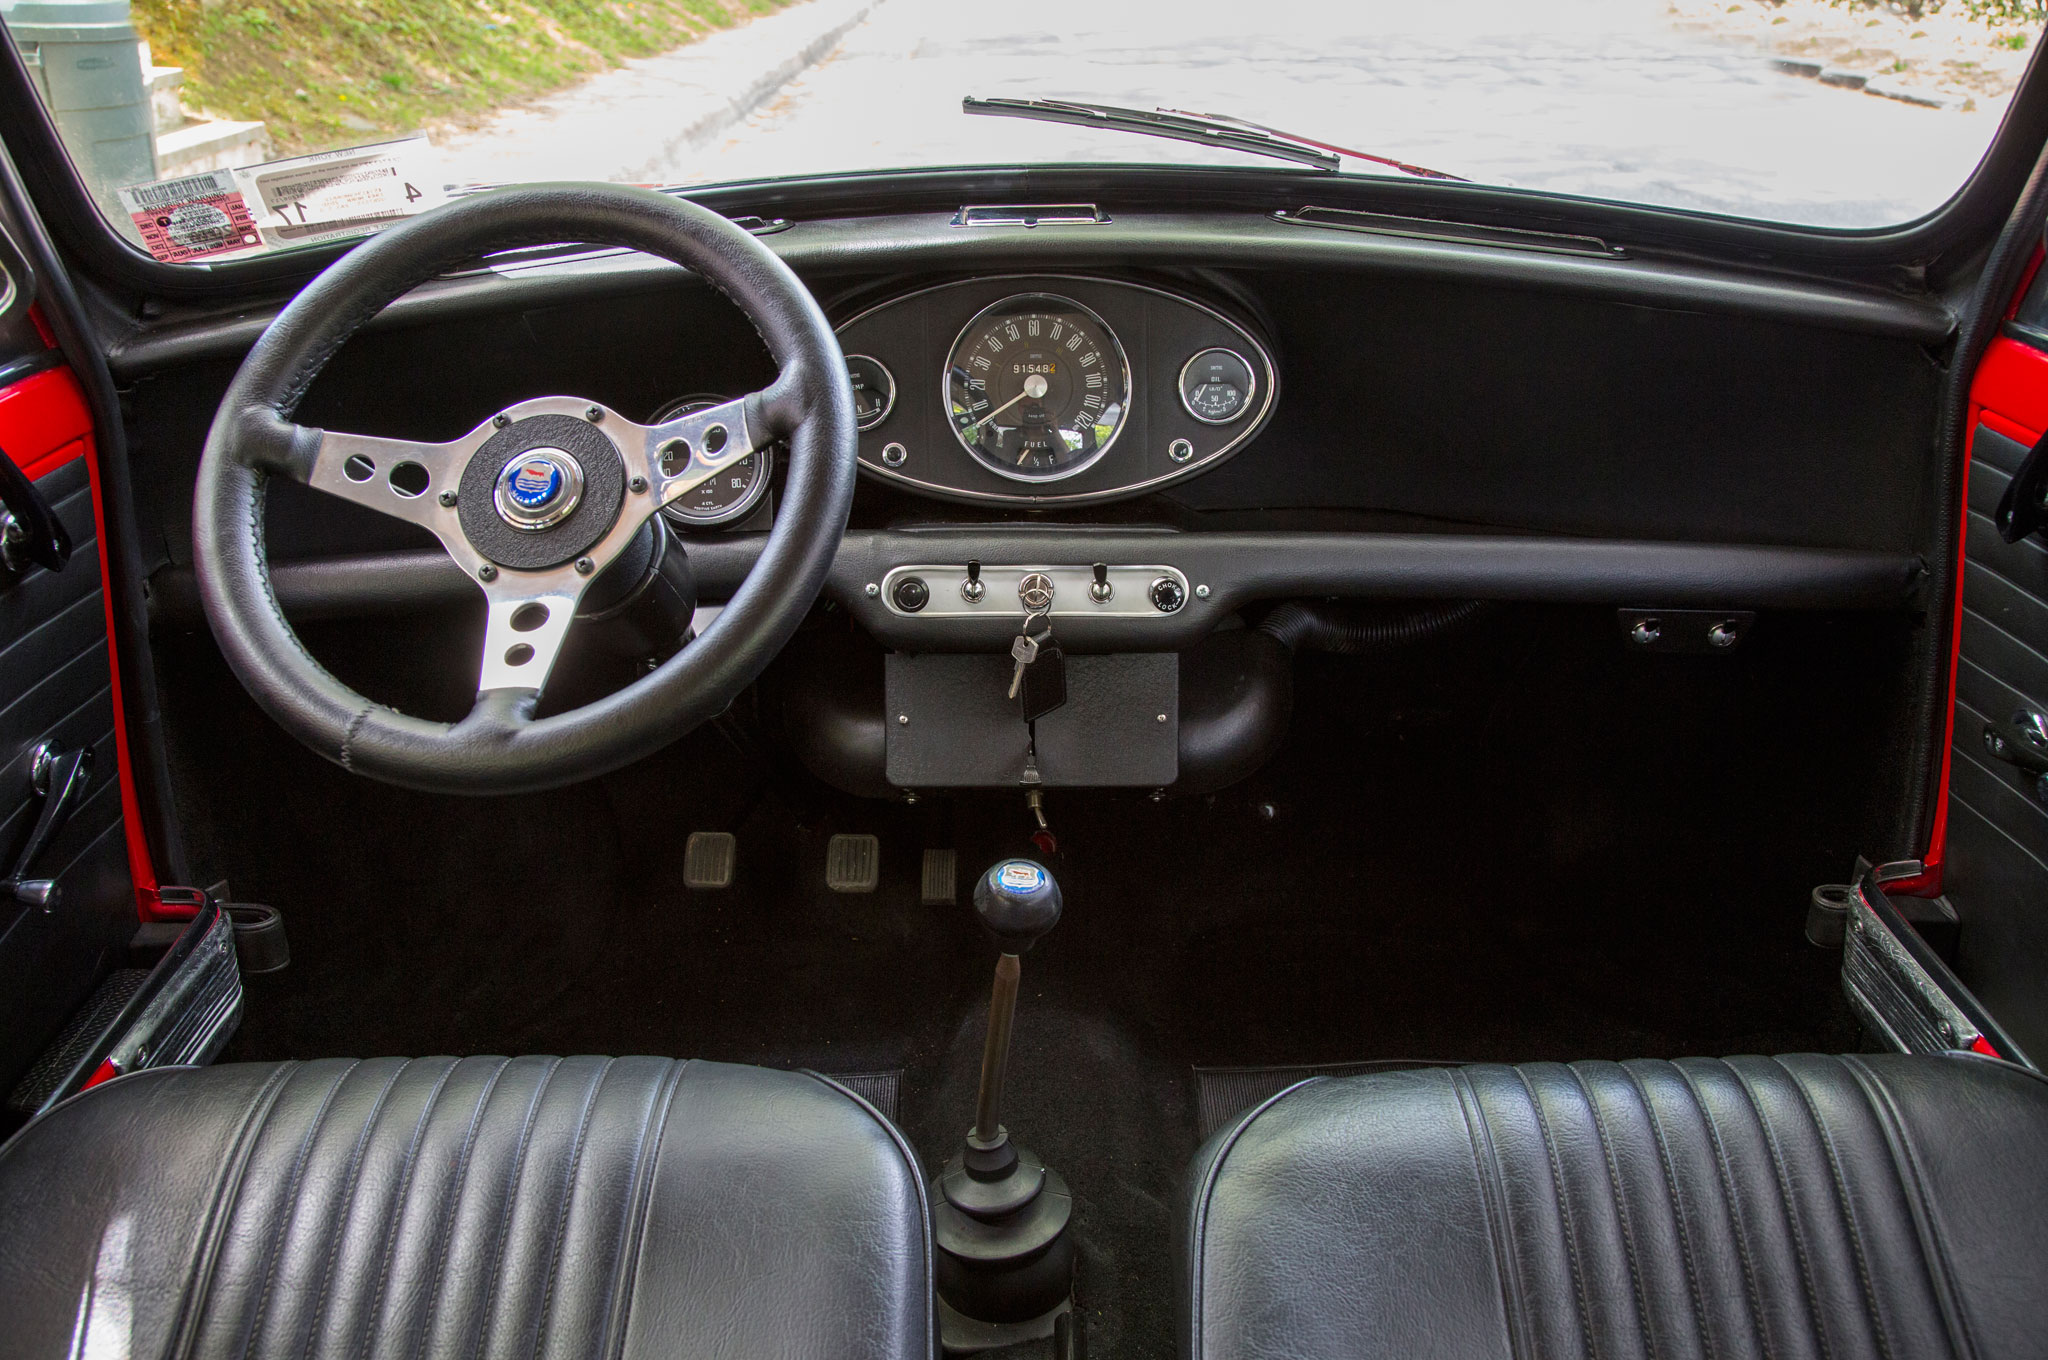 The Mk II's interior is ascetic compared with the modern Mini's.